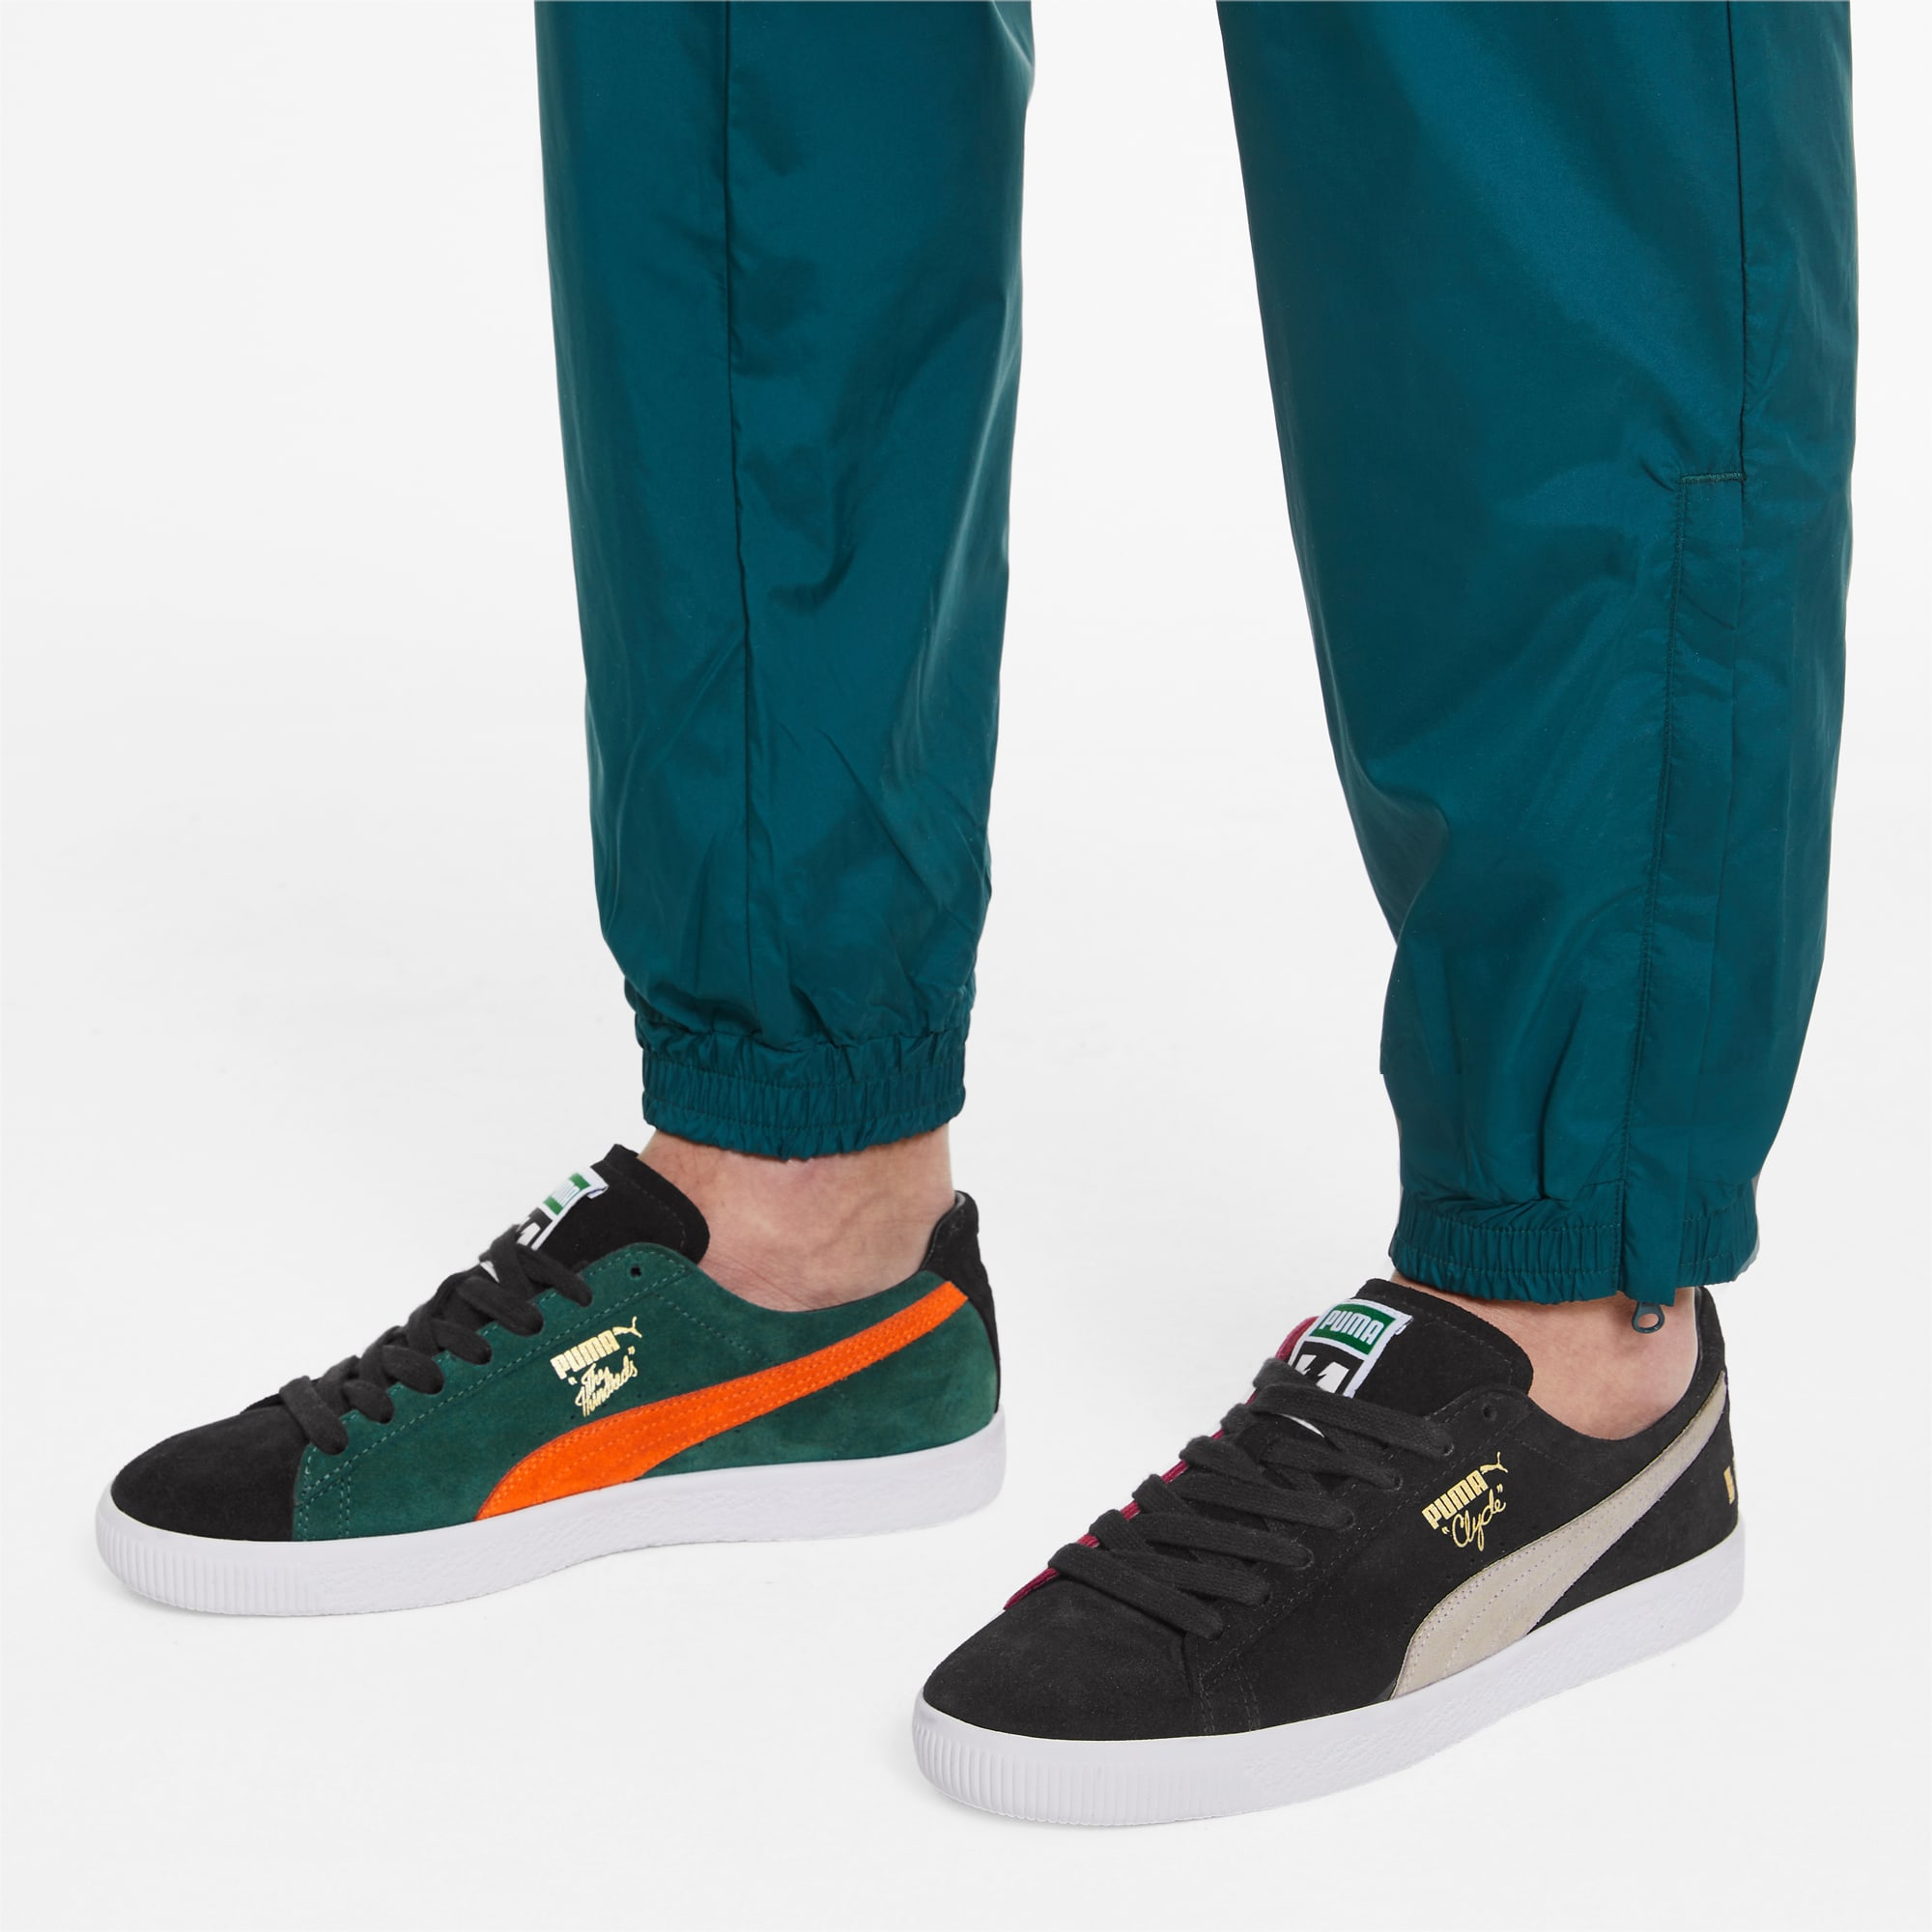 PUMA x THE HUNDREDS Clyde Men's Sneakers